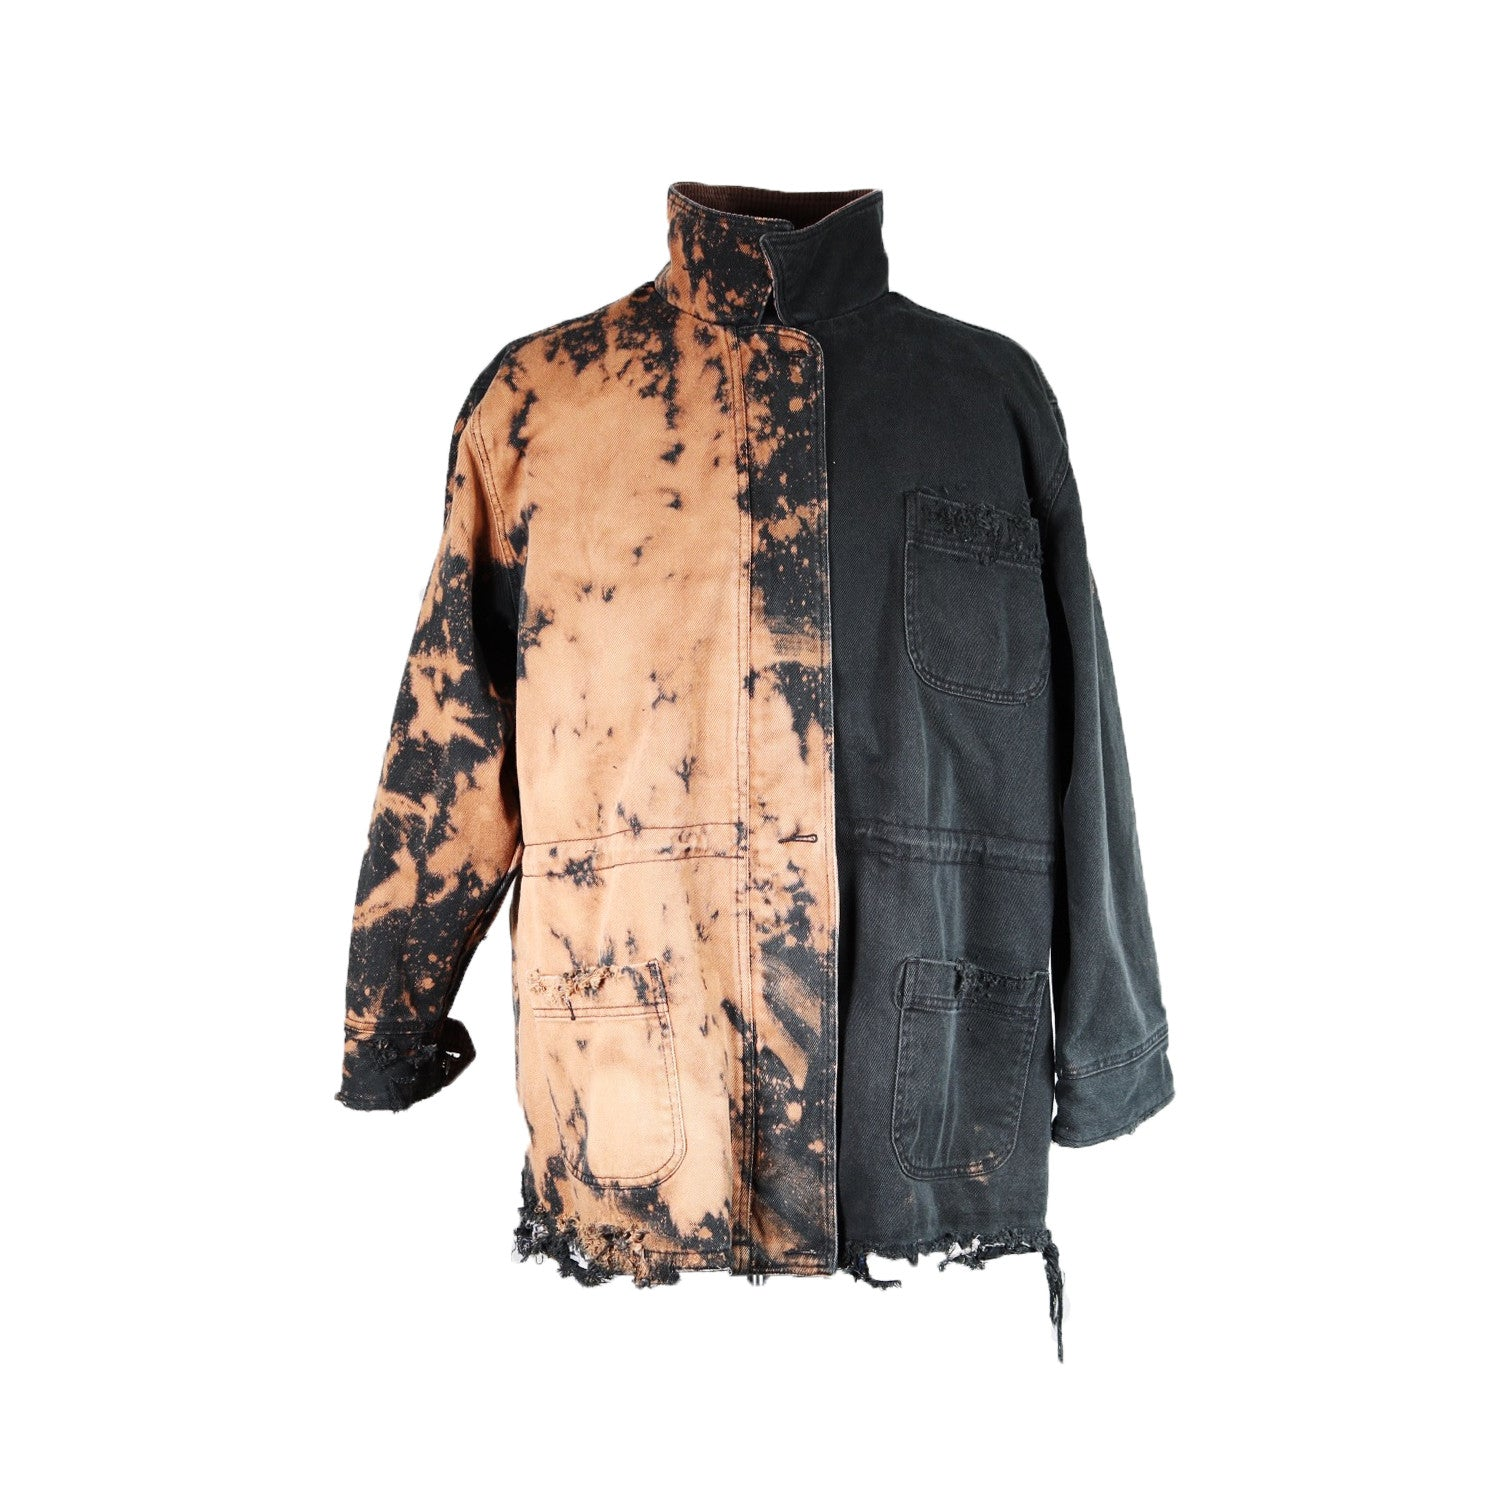 NITRO SWITCH JACKET